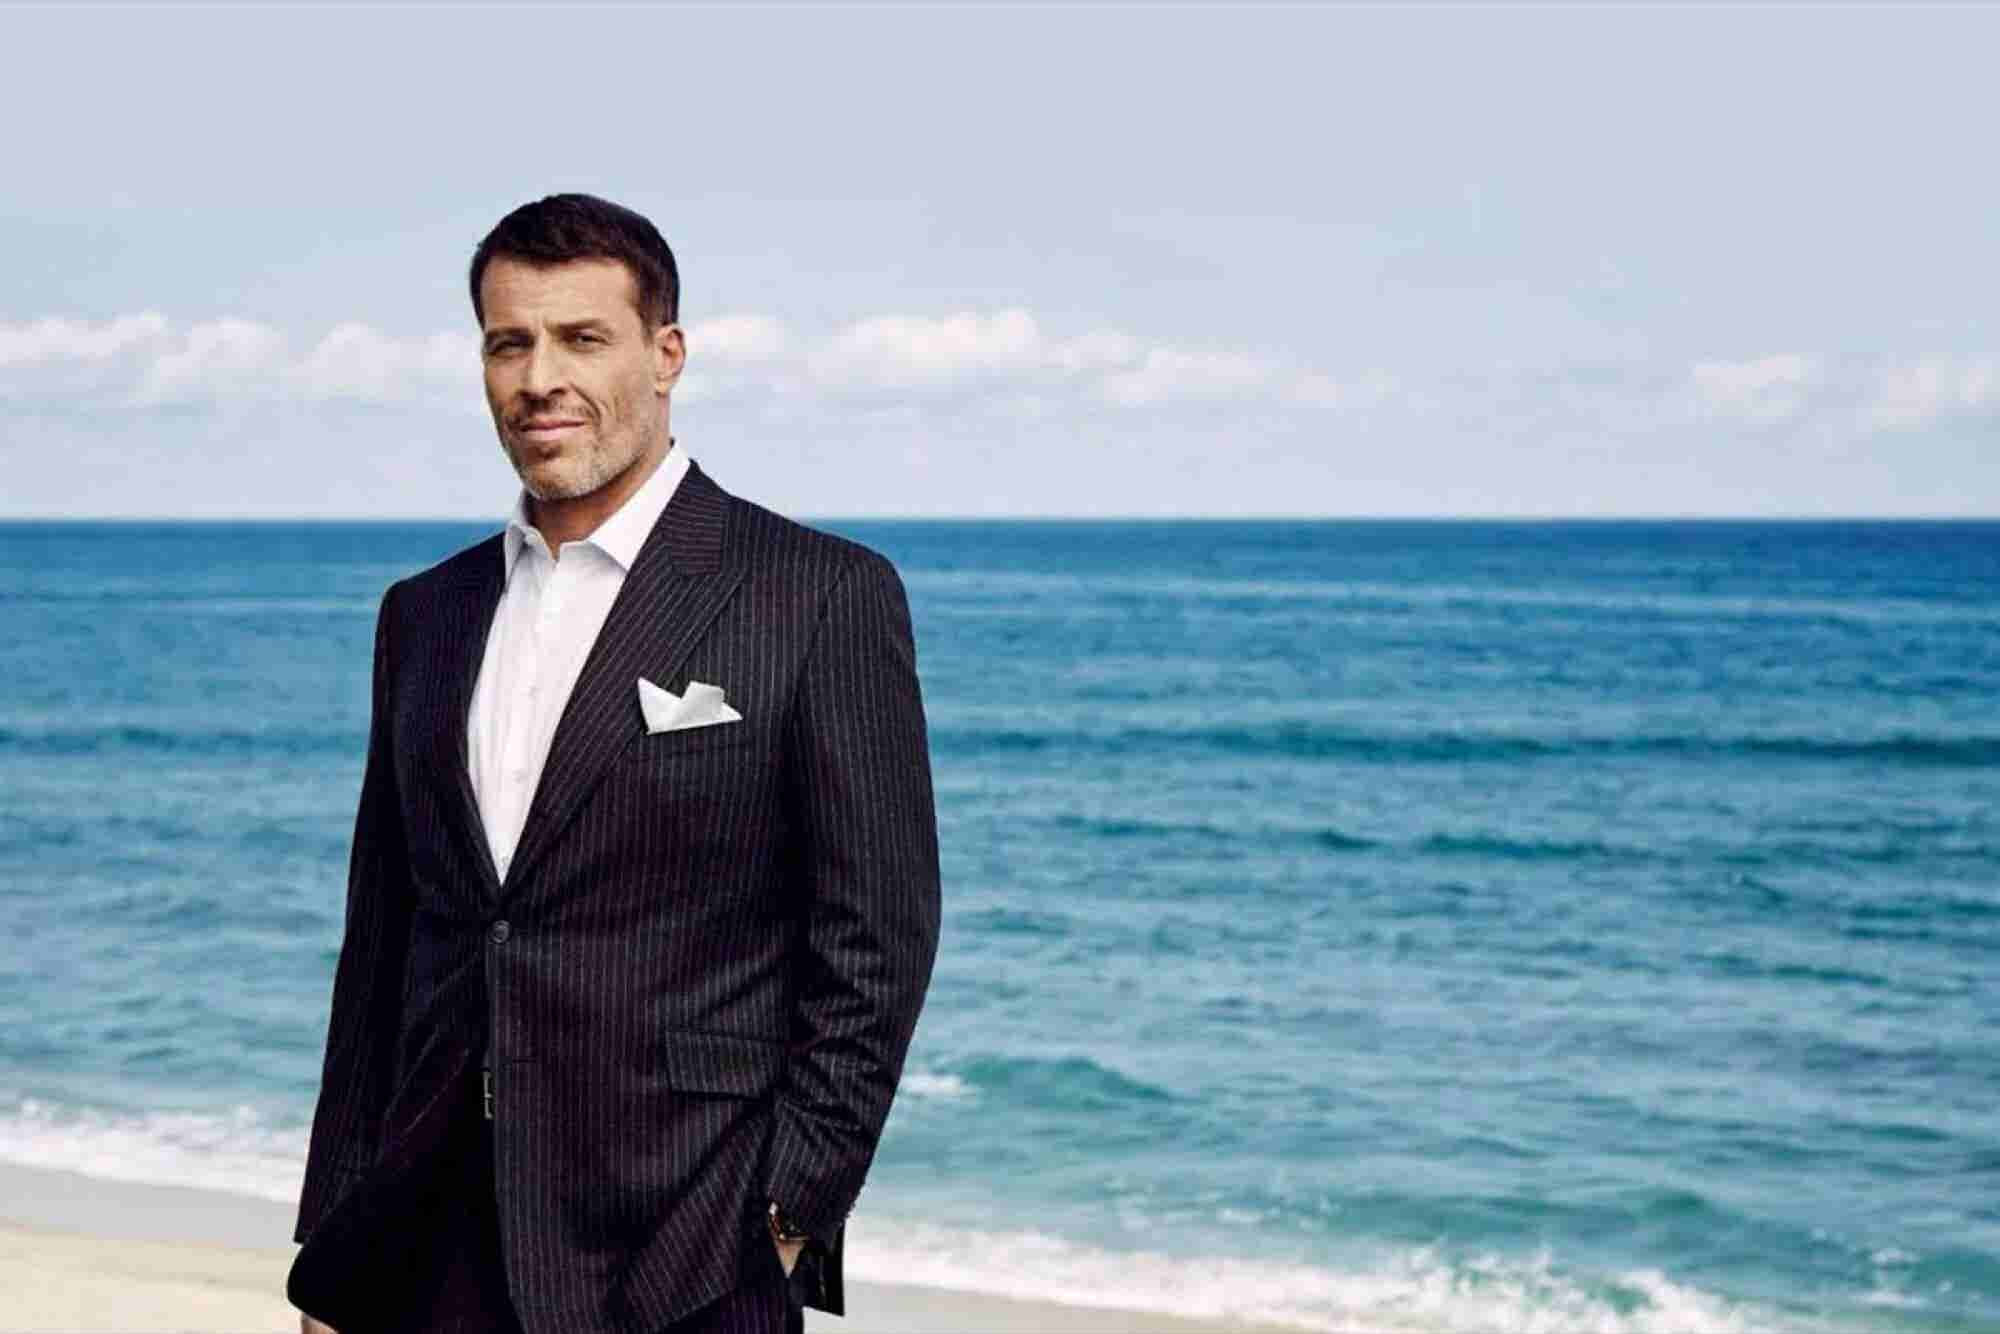 Tony Robbins: How Tax-Savvy Is Your Retirement Plan?